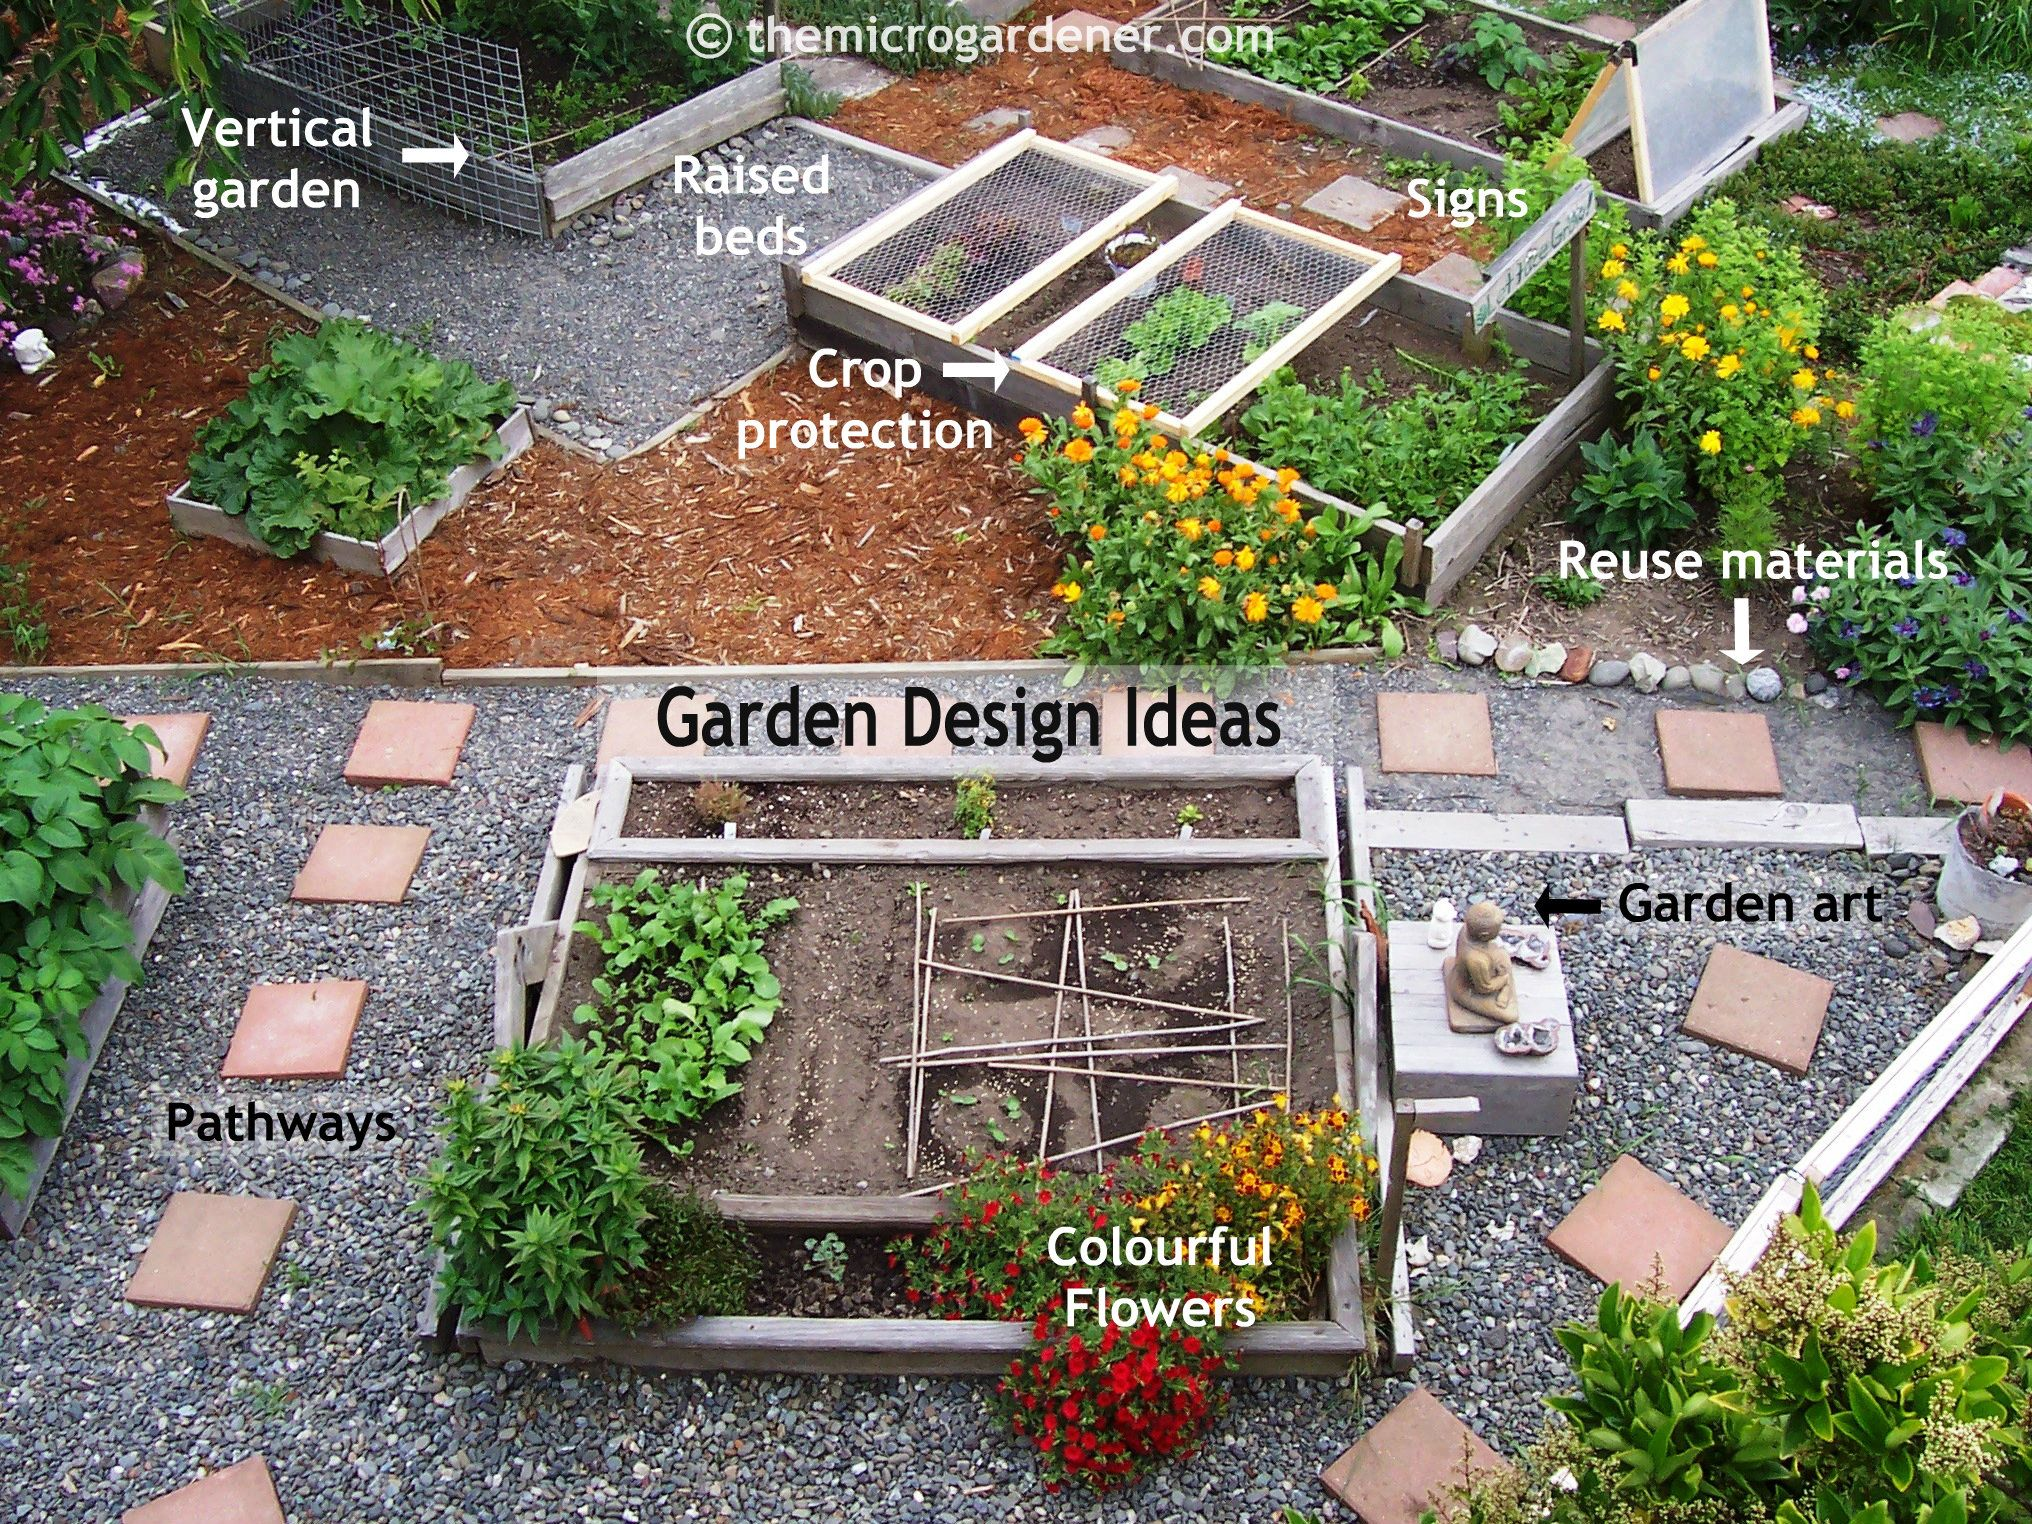 Small garden design ideas on pinterest vertical gardens for Small garden layout